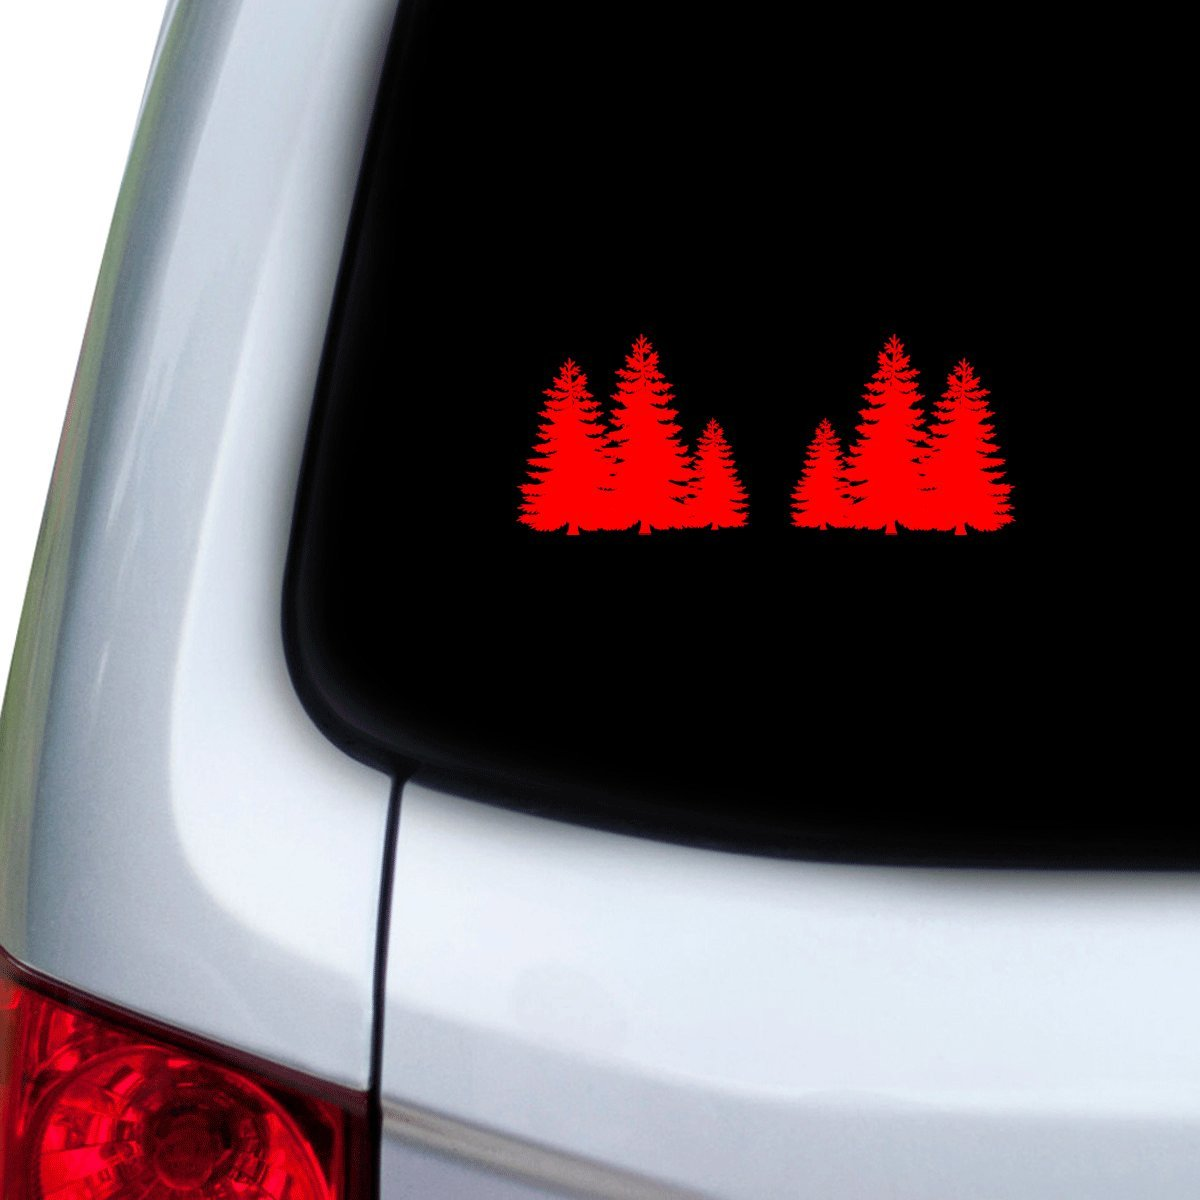 Hoods StickAny Car and Auto Decal Series Hiding Forest Trees Sticker for Windows Red Doors